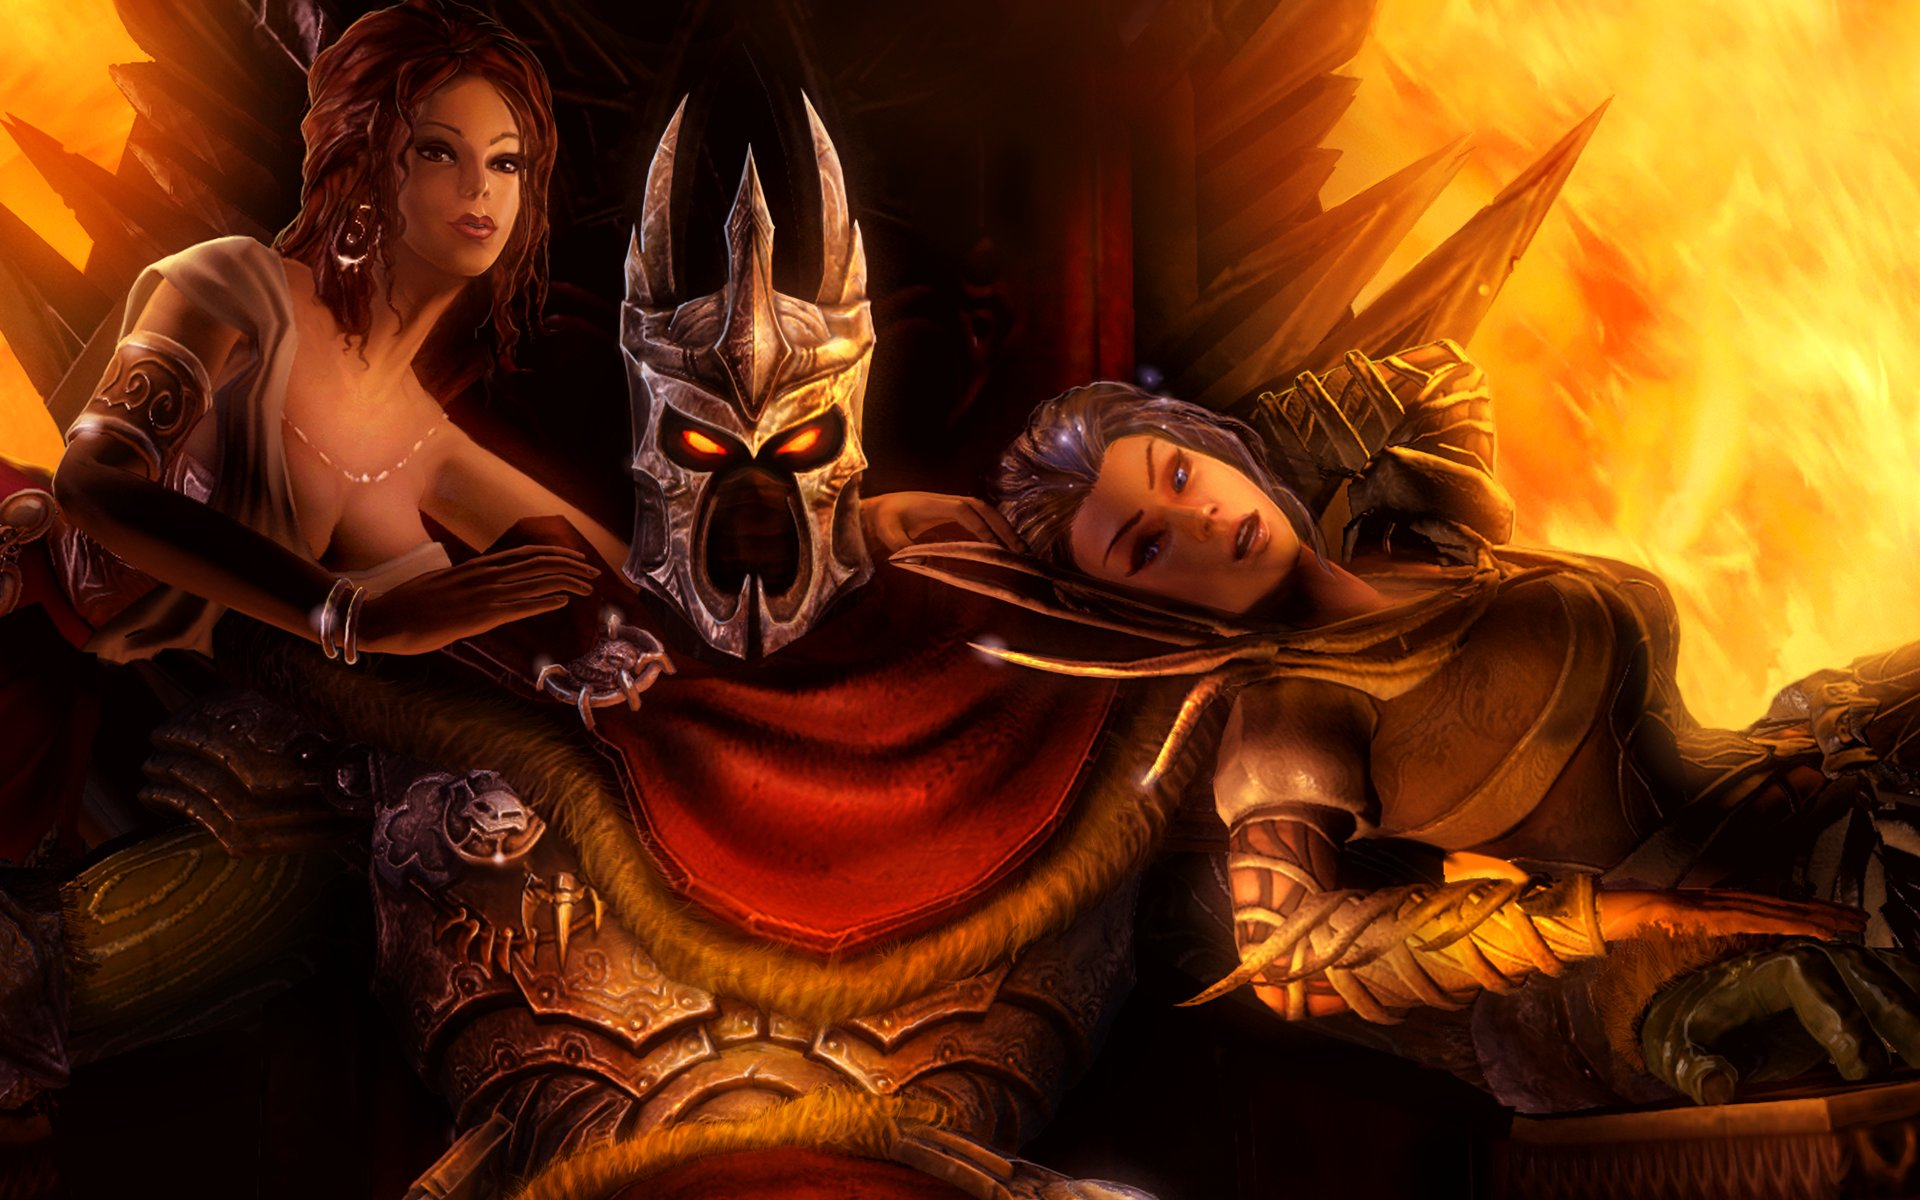 Downaload Overlord King And Warriors Art Wallpaper: Overlord Anime Wallpaper